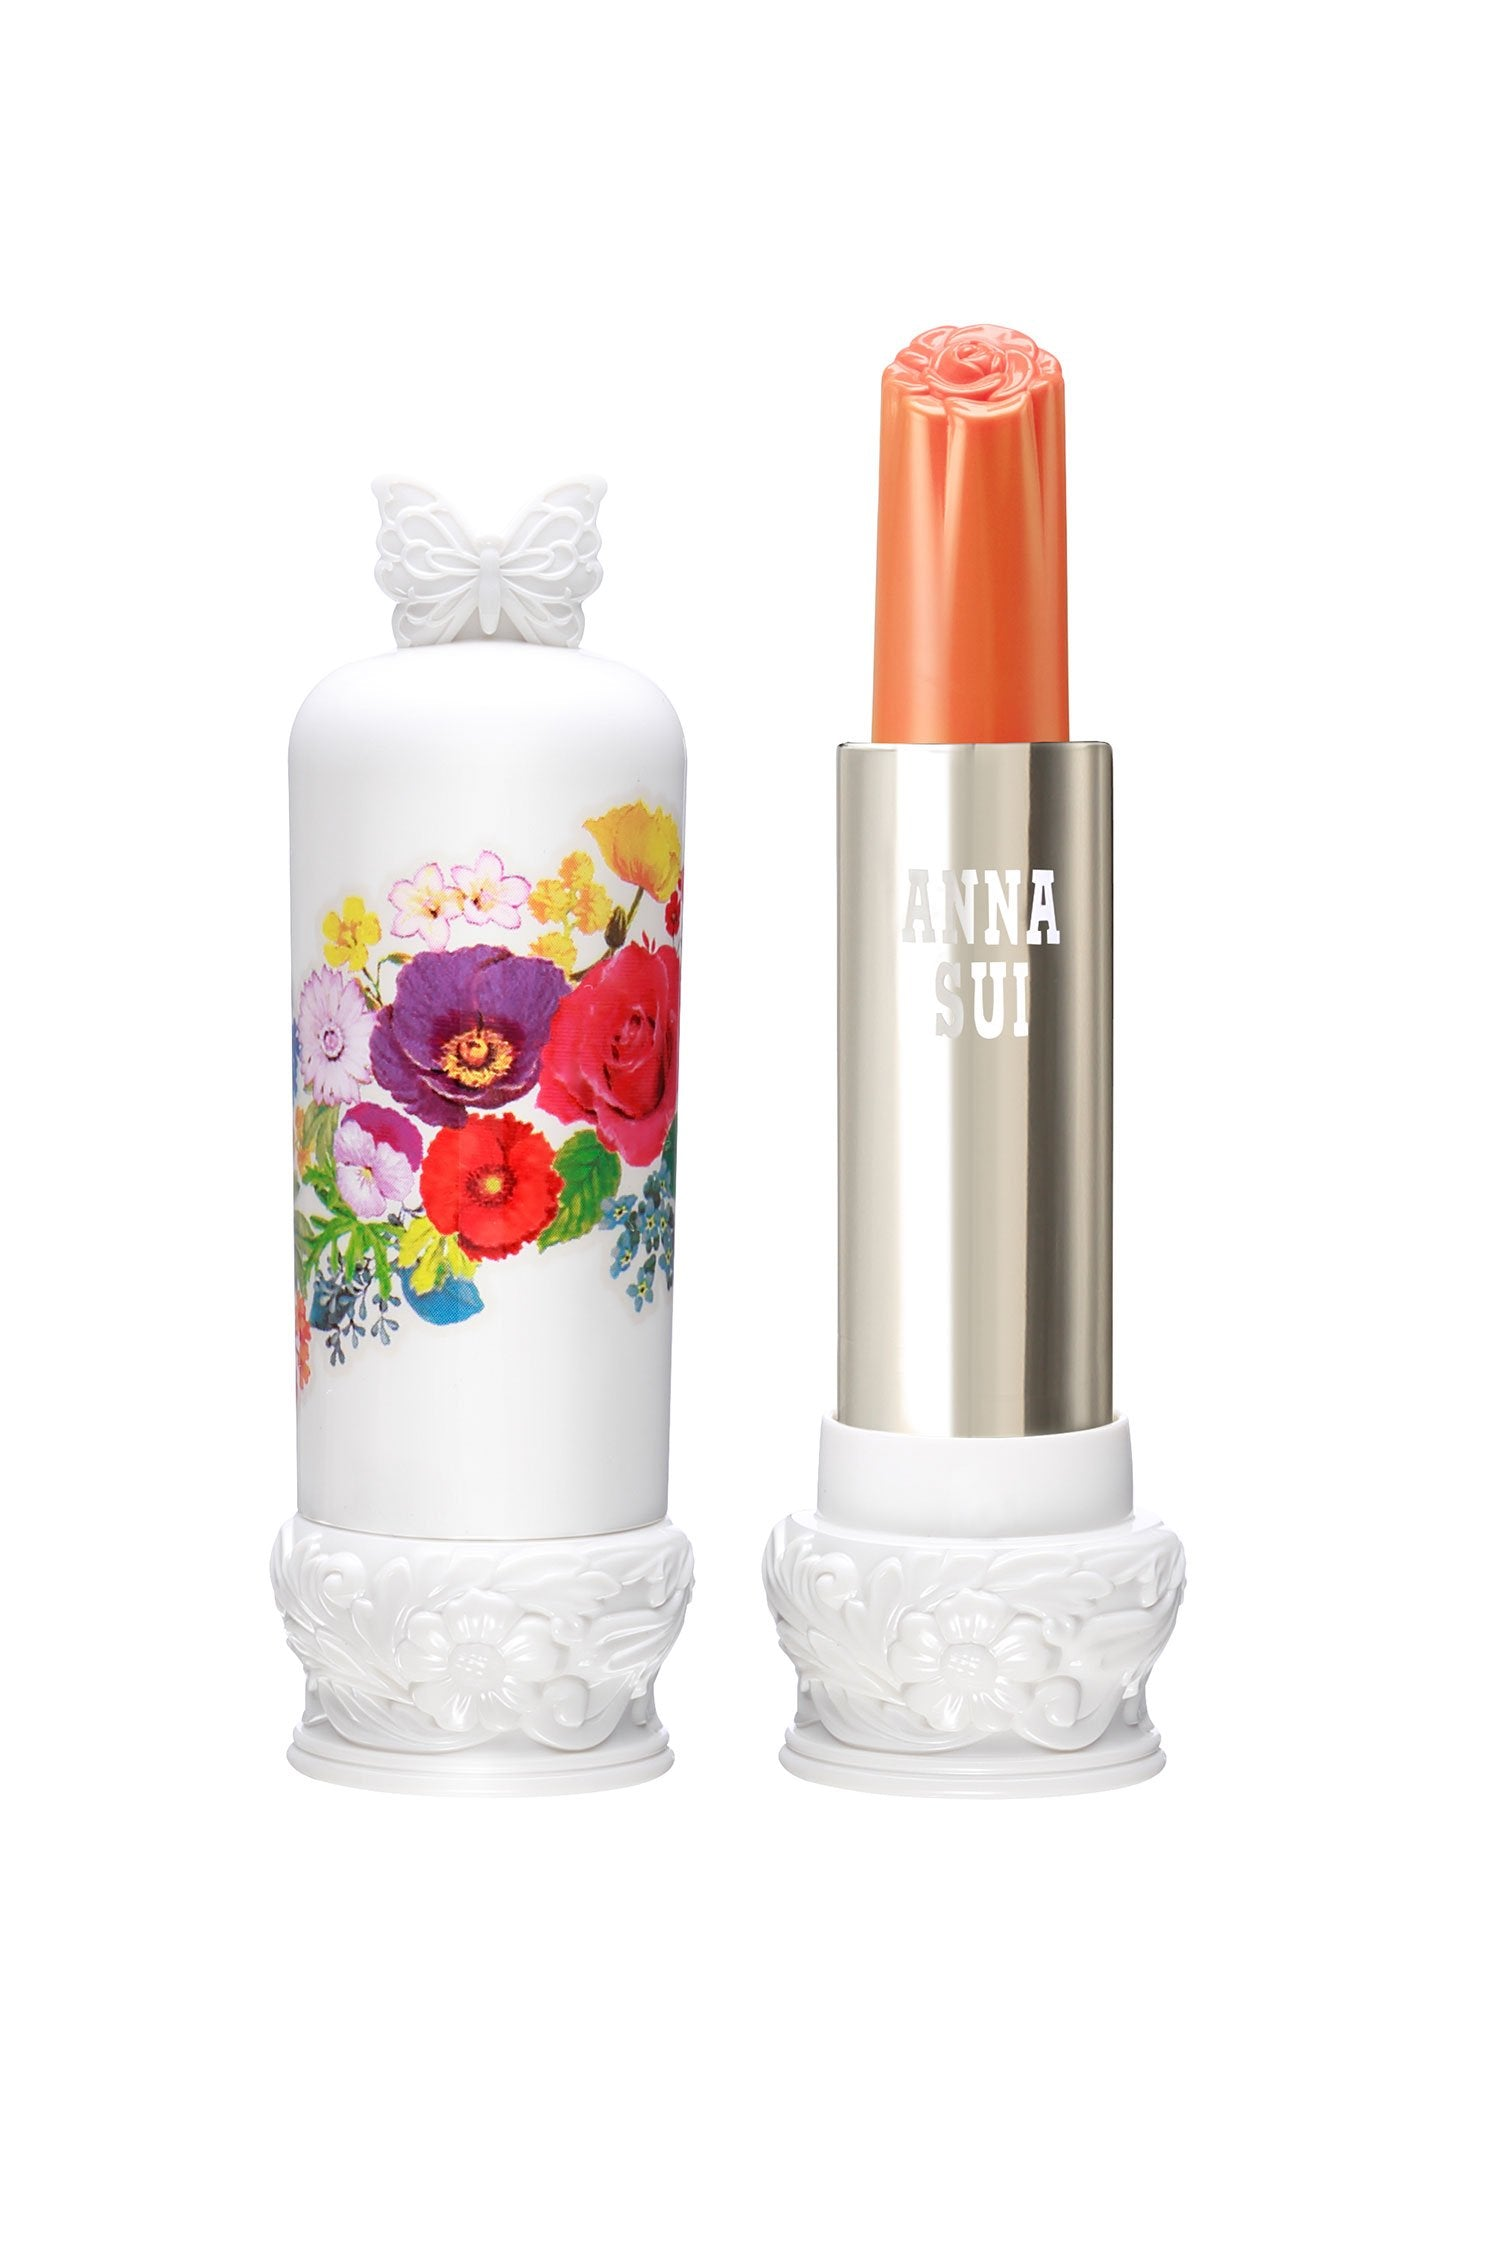 New: Lipstick S: Sheer Flower - Anna Sui